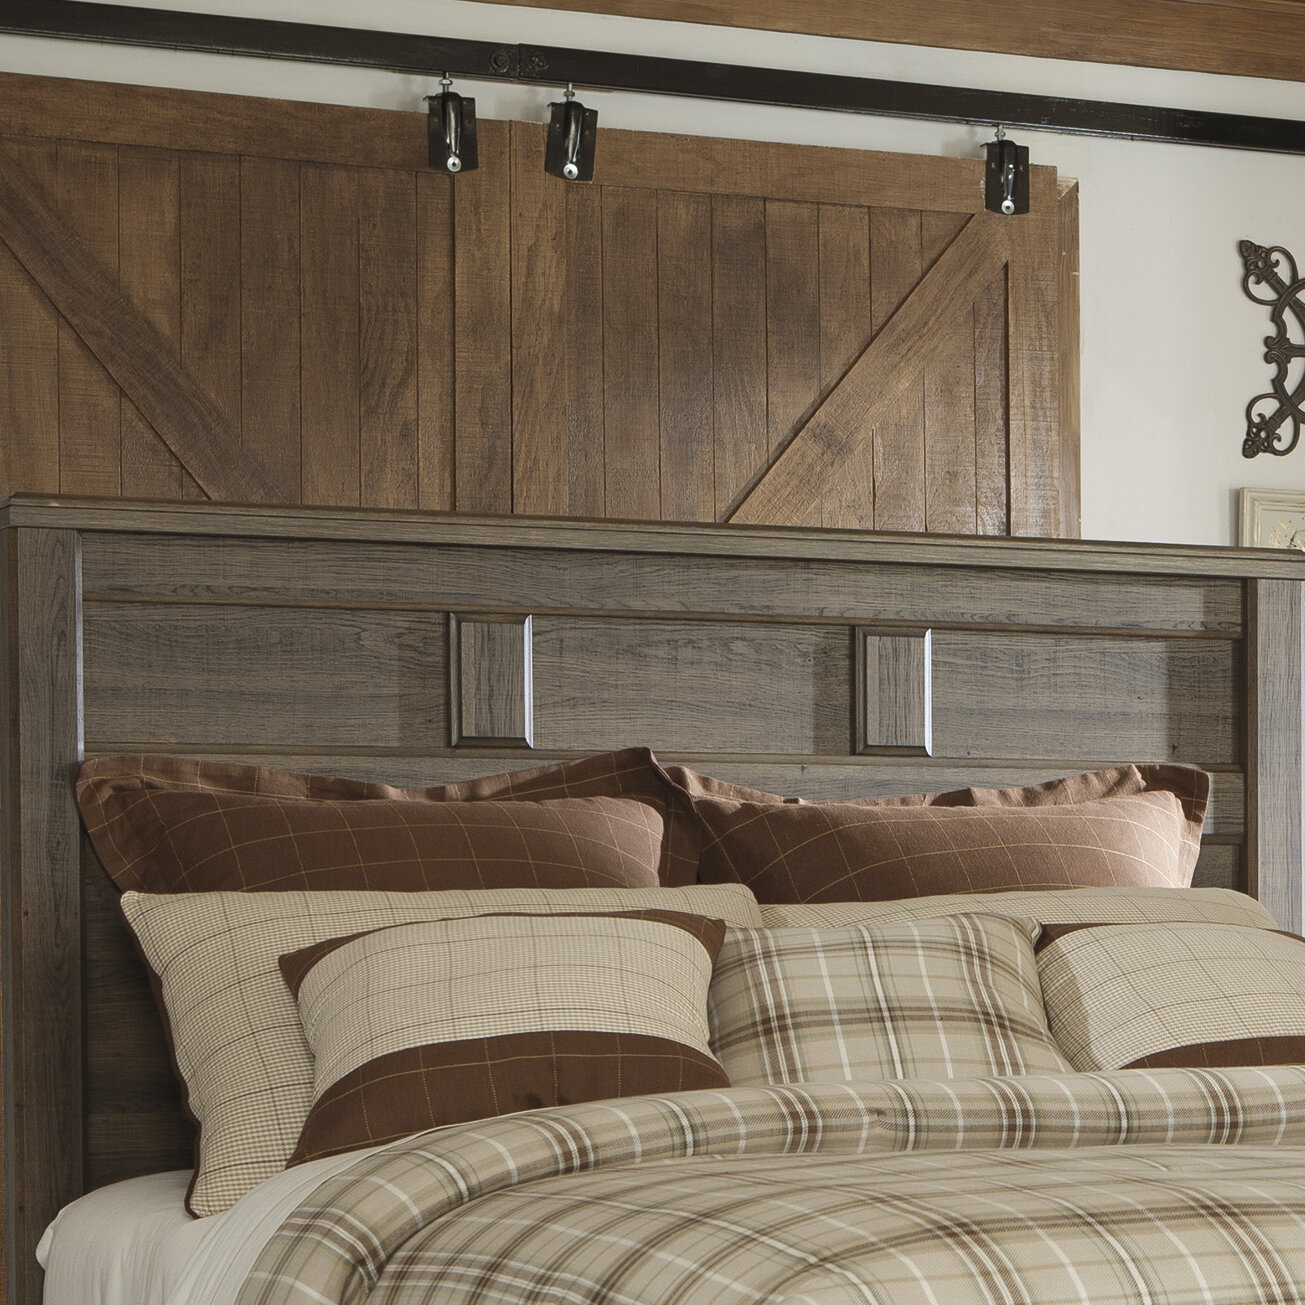 treatment headboard bedding wood and frame panel bedroom window footboard tufted wooden twin nice headboards cherry size